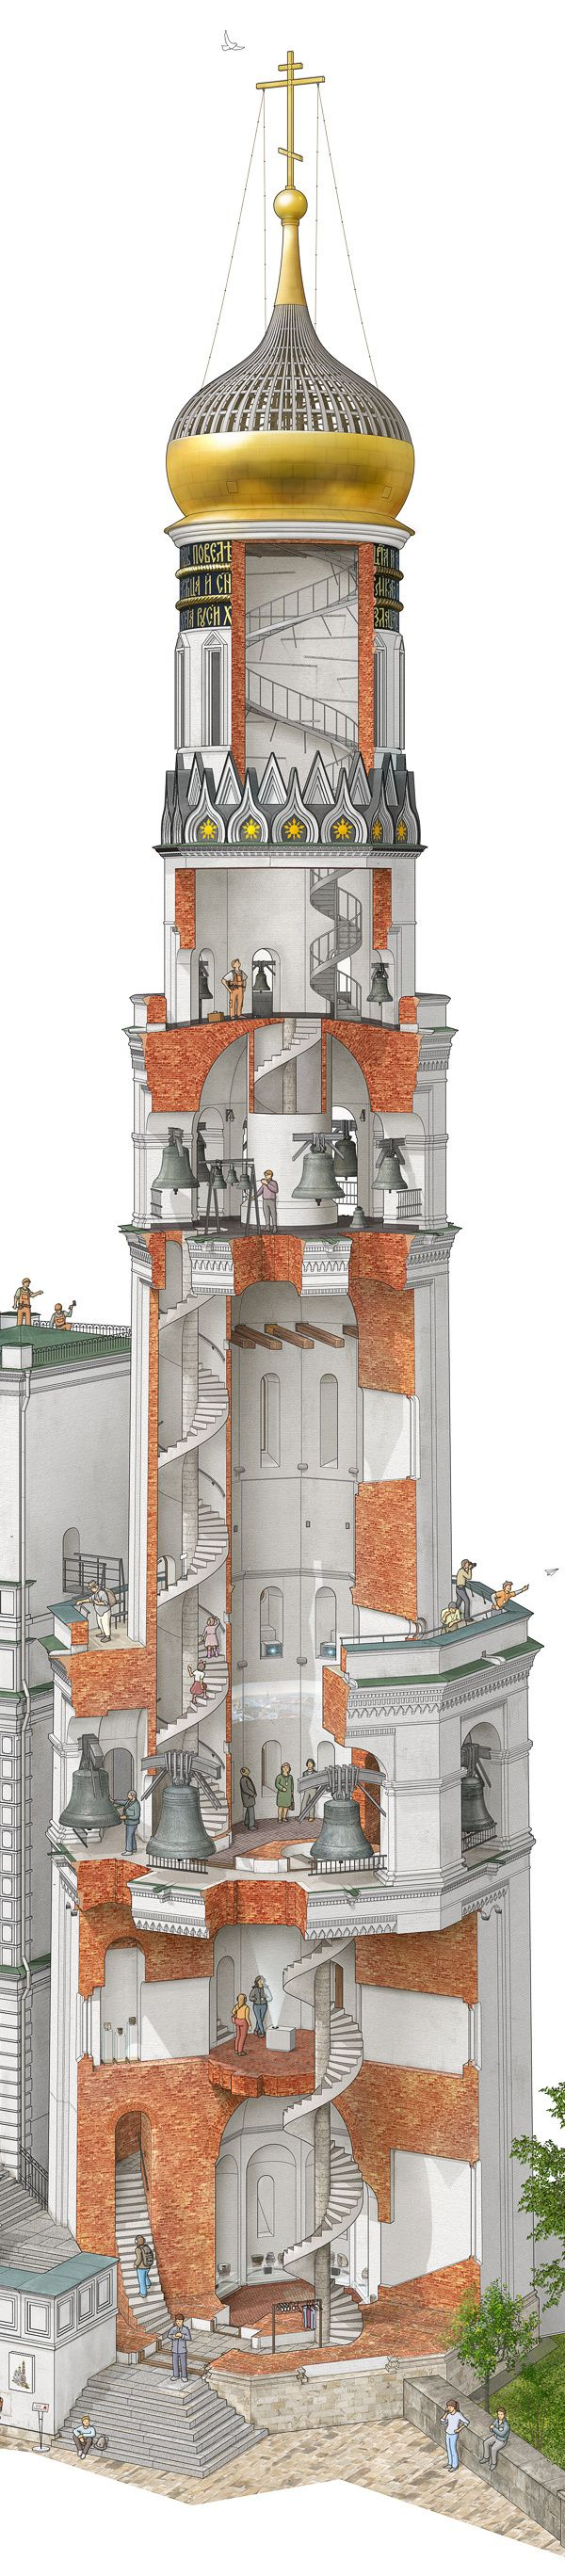 Ivan the Great Bell Tower on Behance